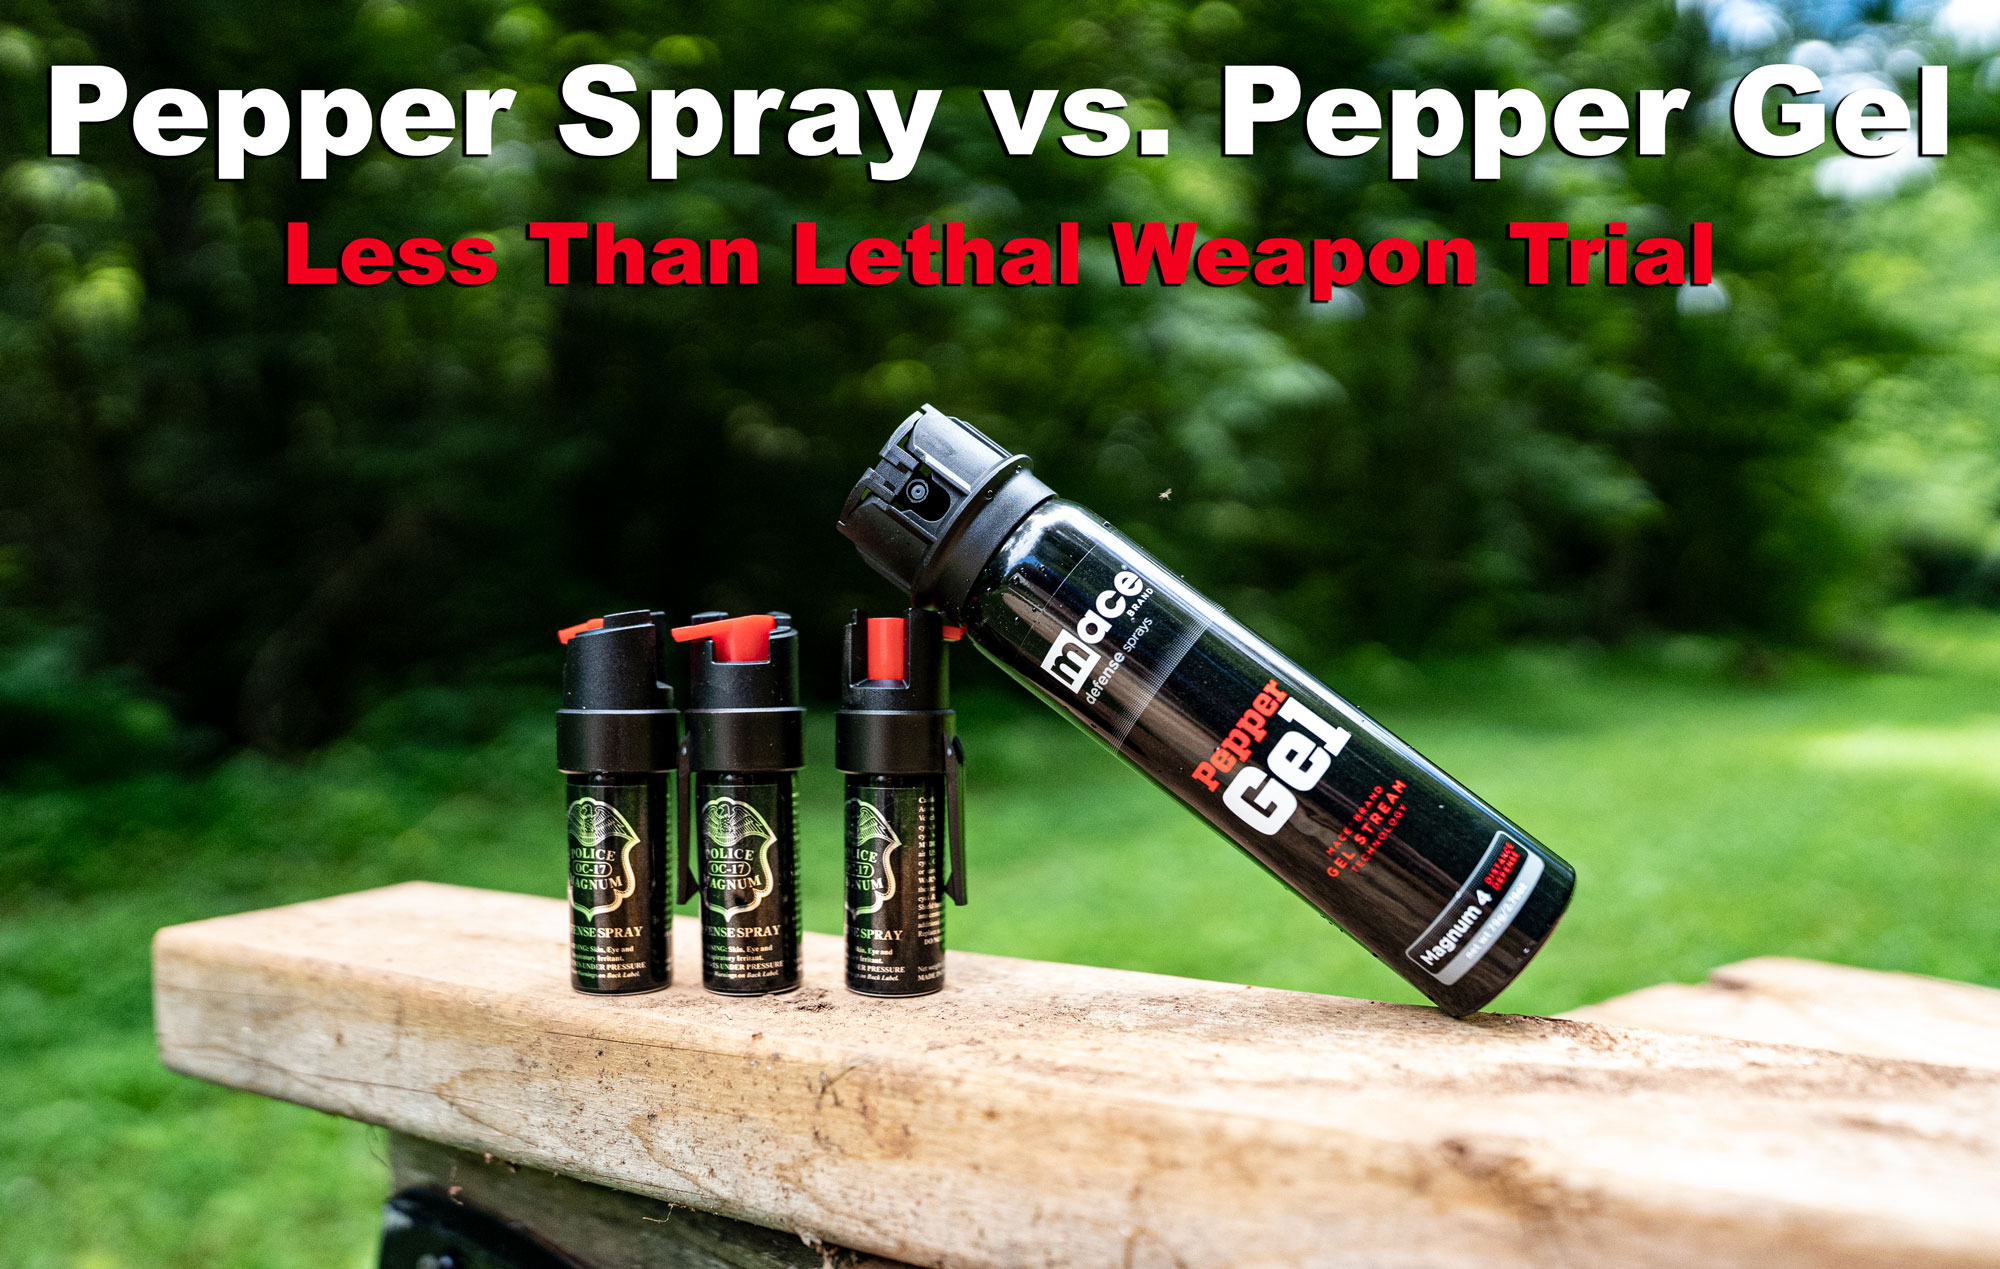 Pepper Spray vs Pepper Gel